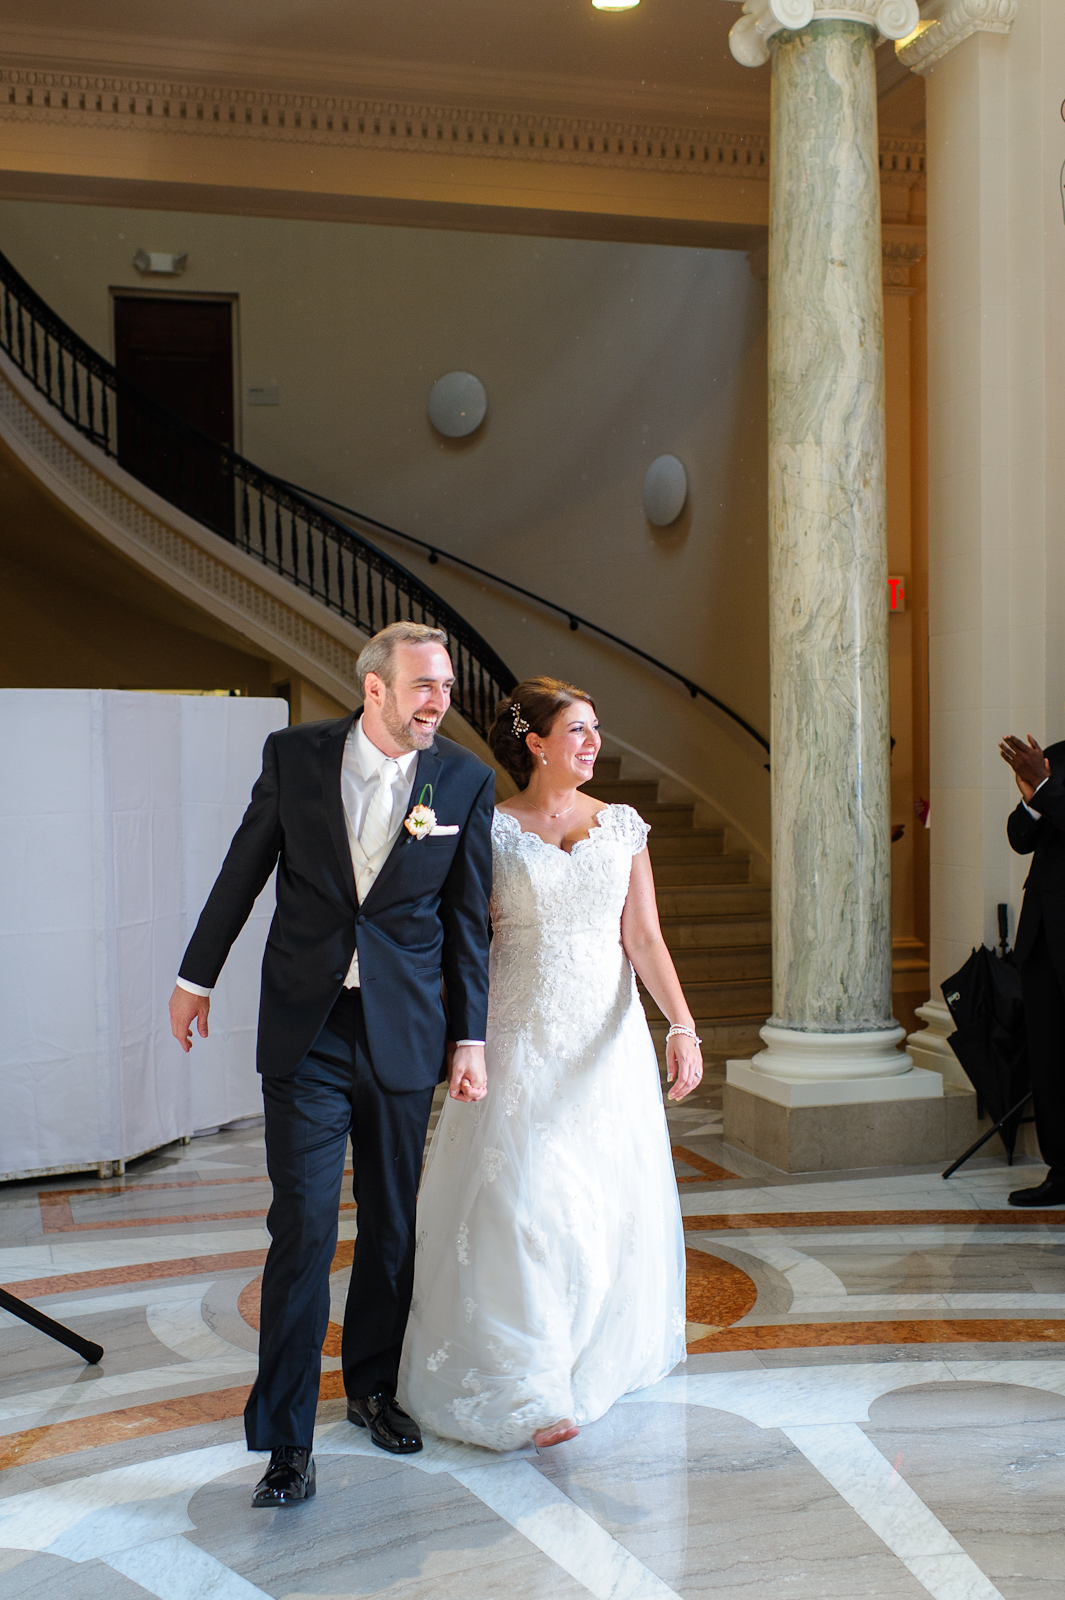 wedding photography dc photographer - district of columbia photography weddingphoto 2012_-38.jpg